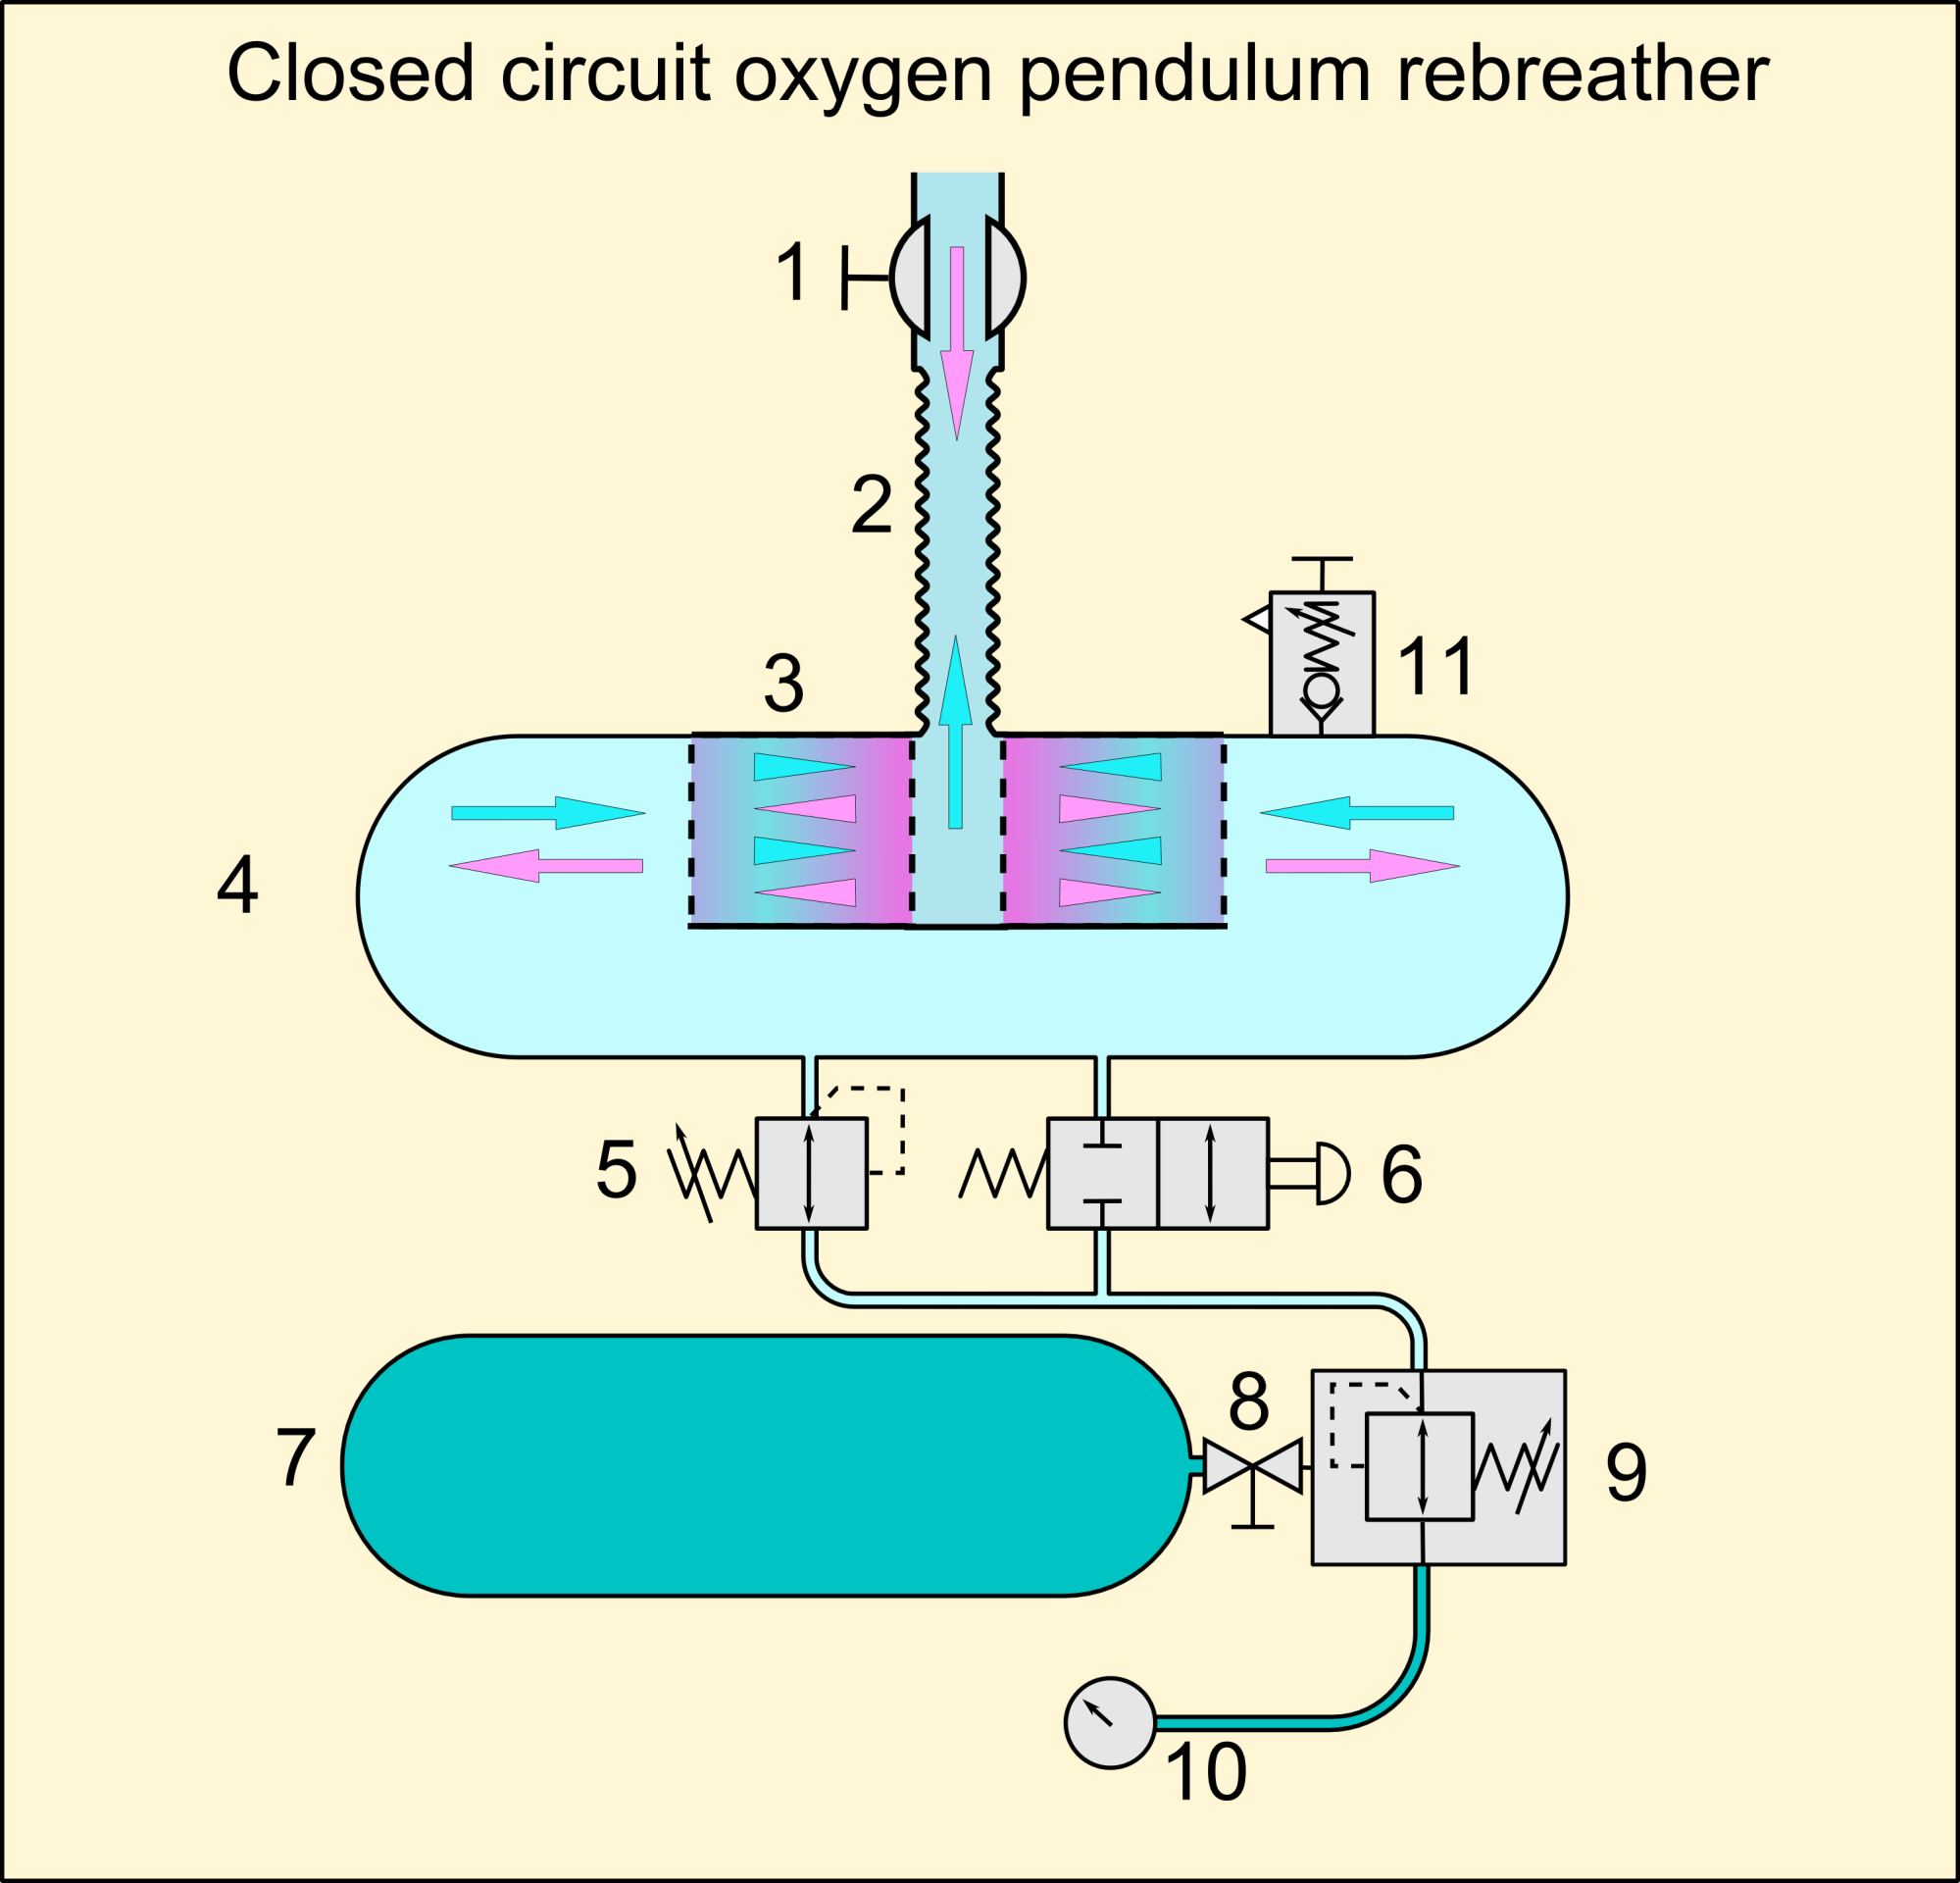 hight resolution of file oxygen ccr pendulum schematic png